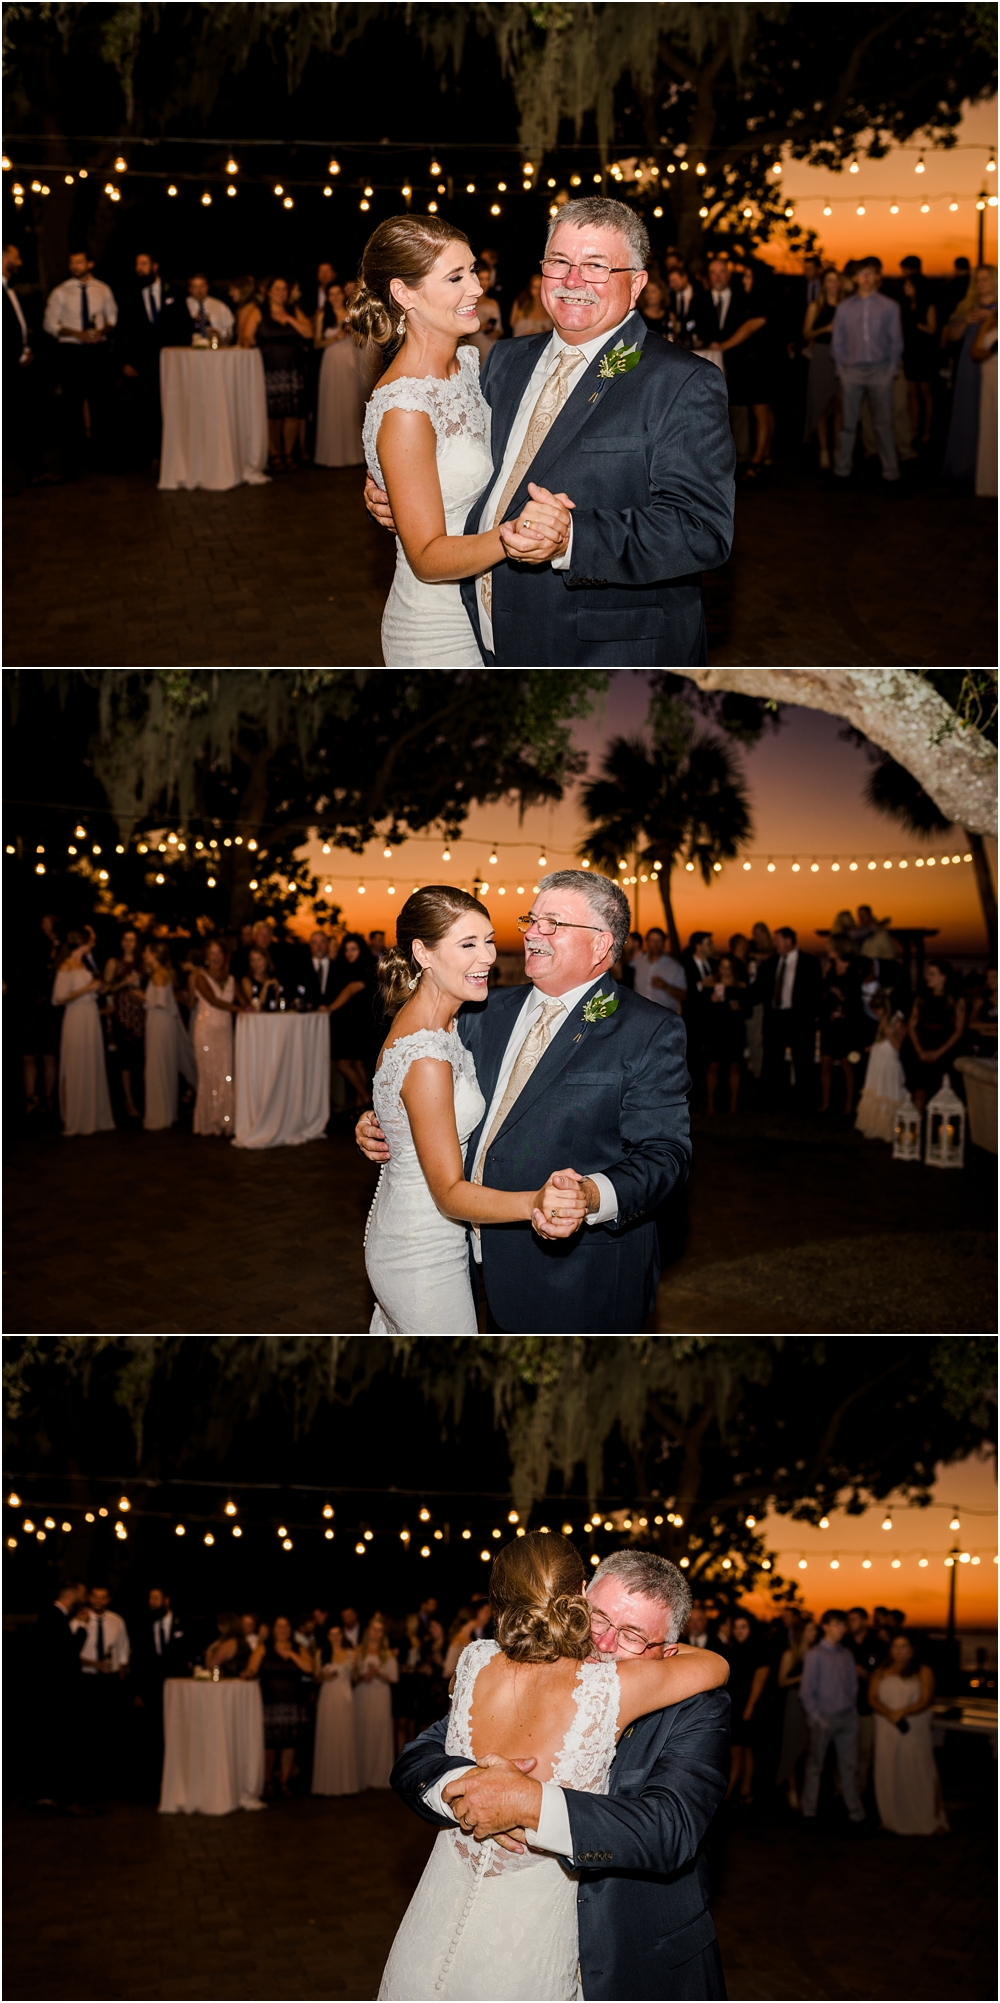 varner-florida-wedding-photographer-30a-panama-city-beach-destin-tallahassee-kiersten-grant-photography-152.jpg